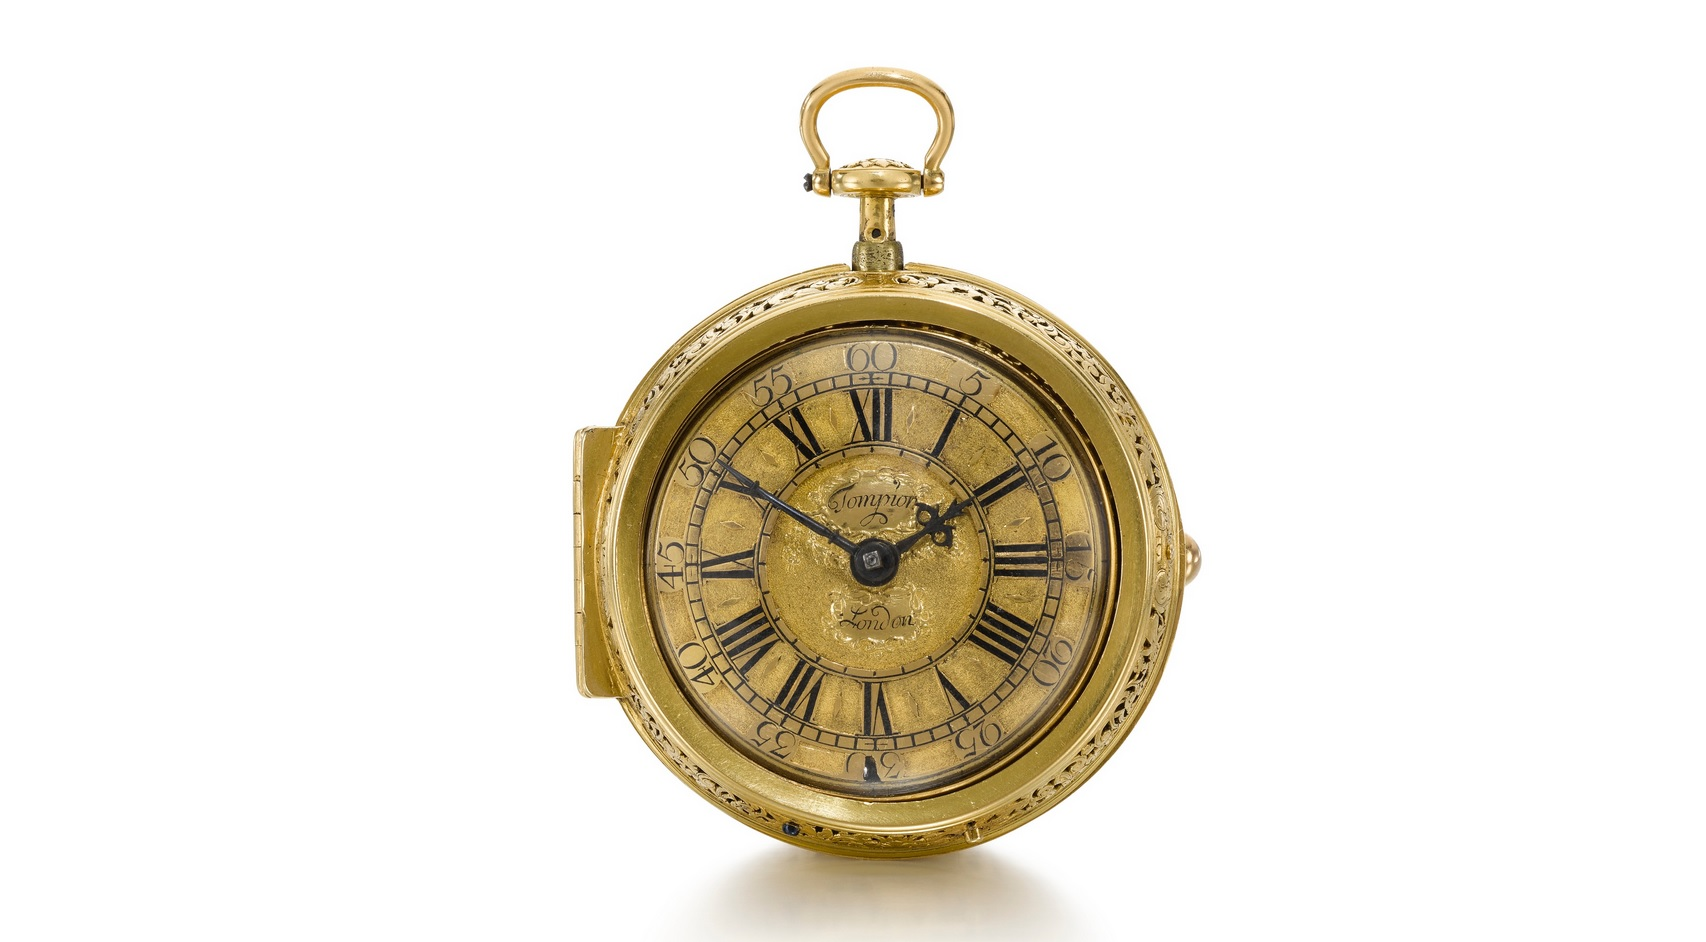 Thomas Tompion 1708 Pocket Watch Sothbeys Auction